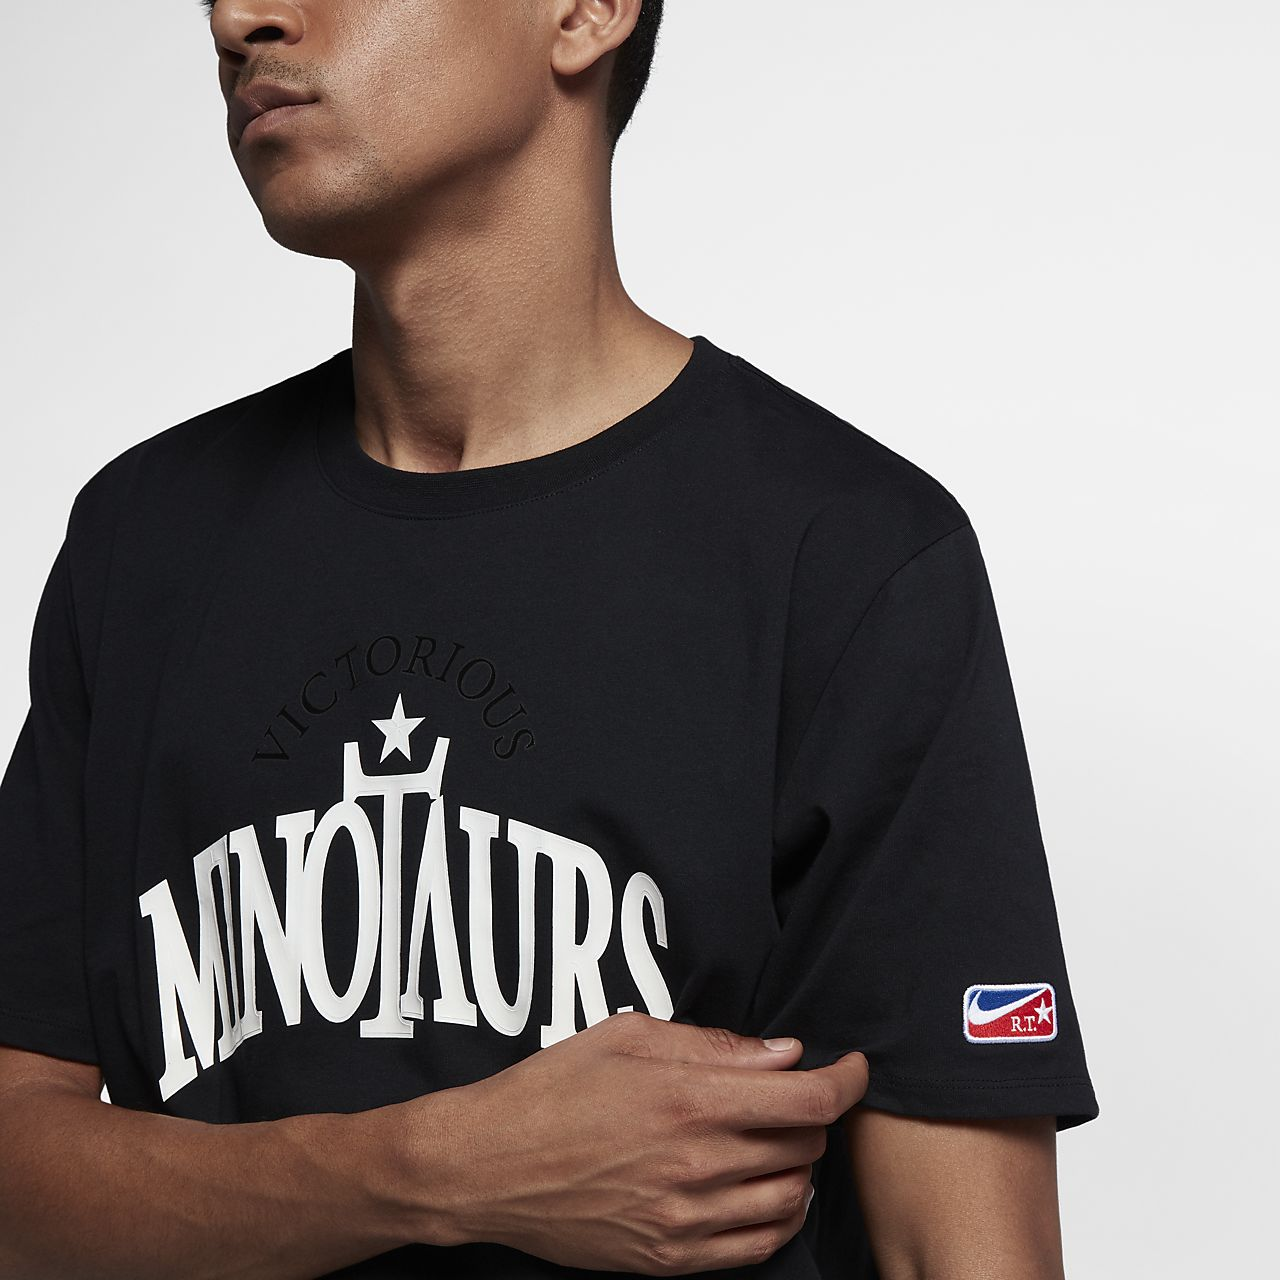 new product f79f7 d9007 NikeLab x RT Victorious Minotaurs